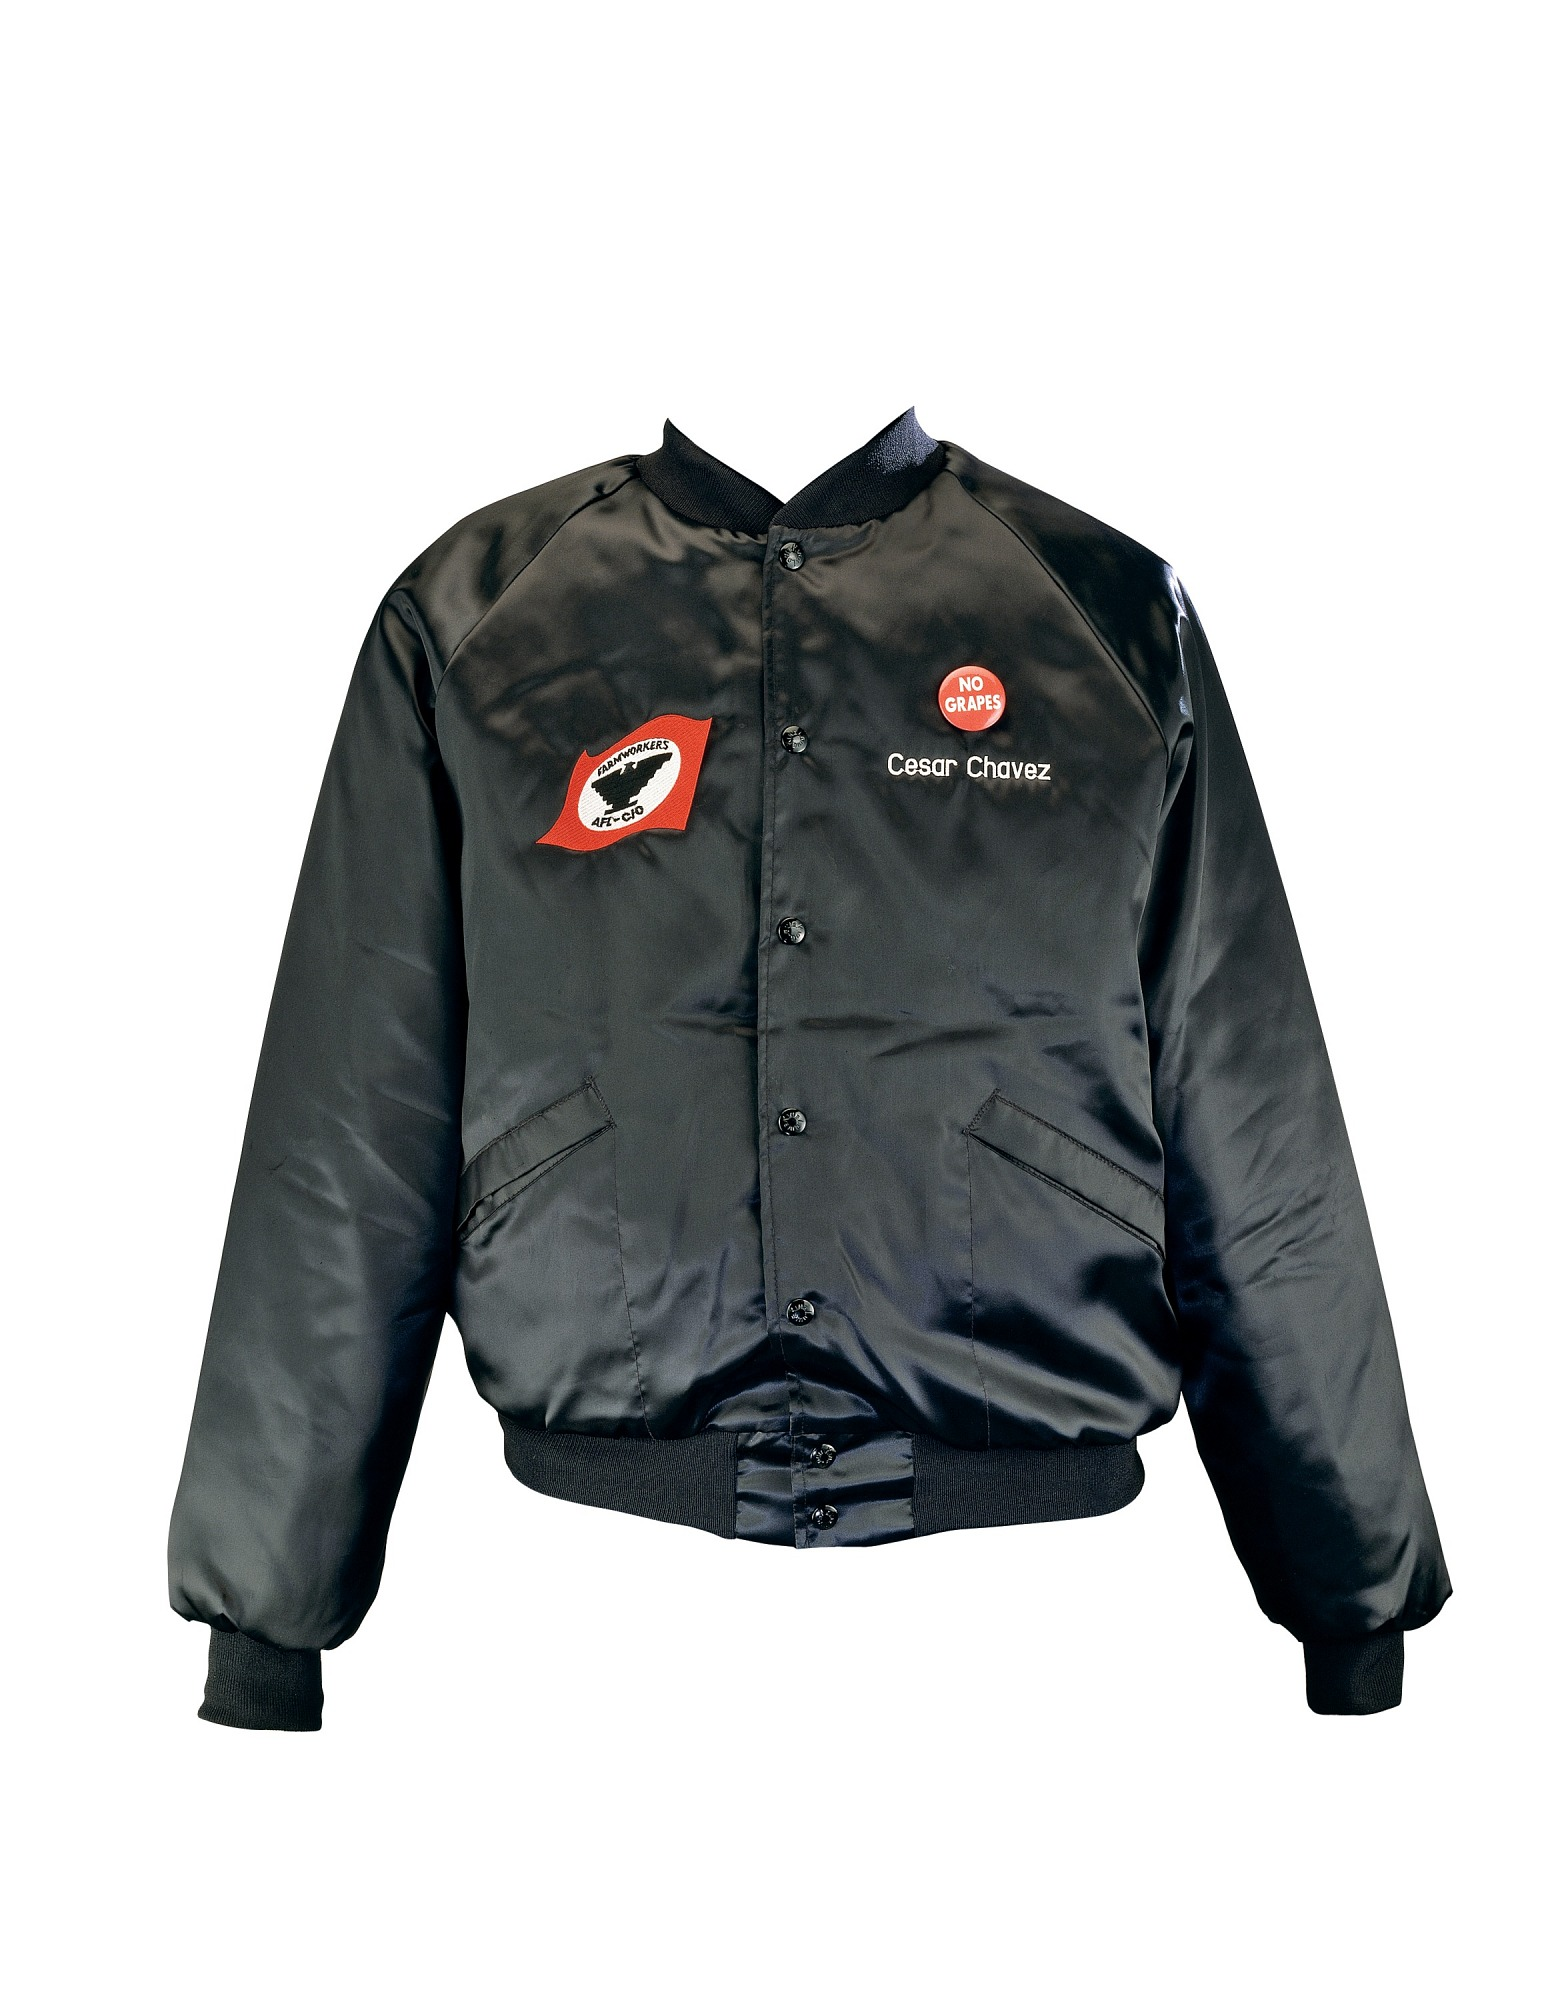 images for Cesar Chavez's Union Jacket